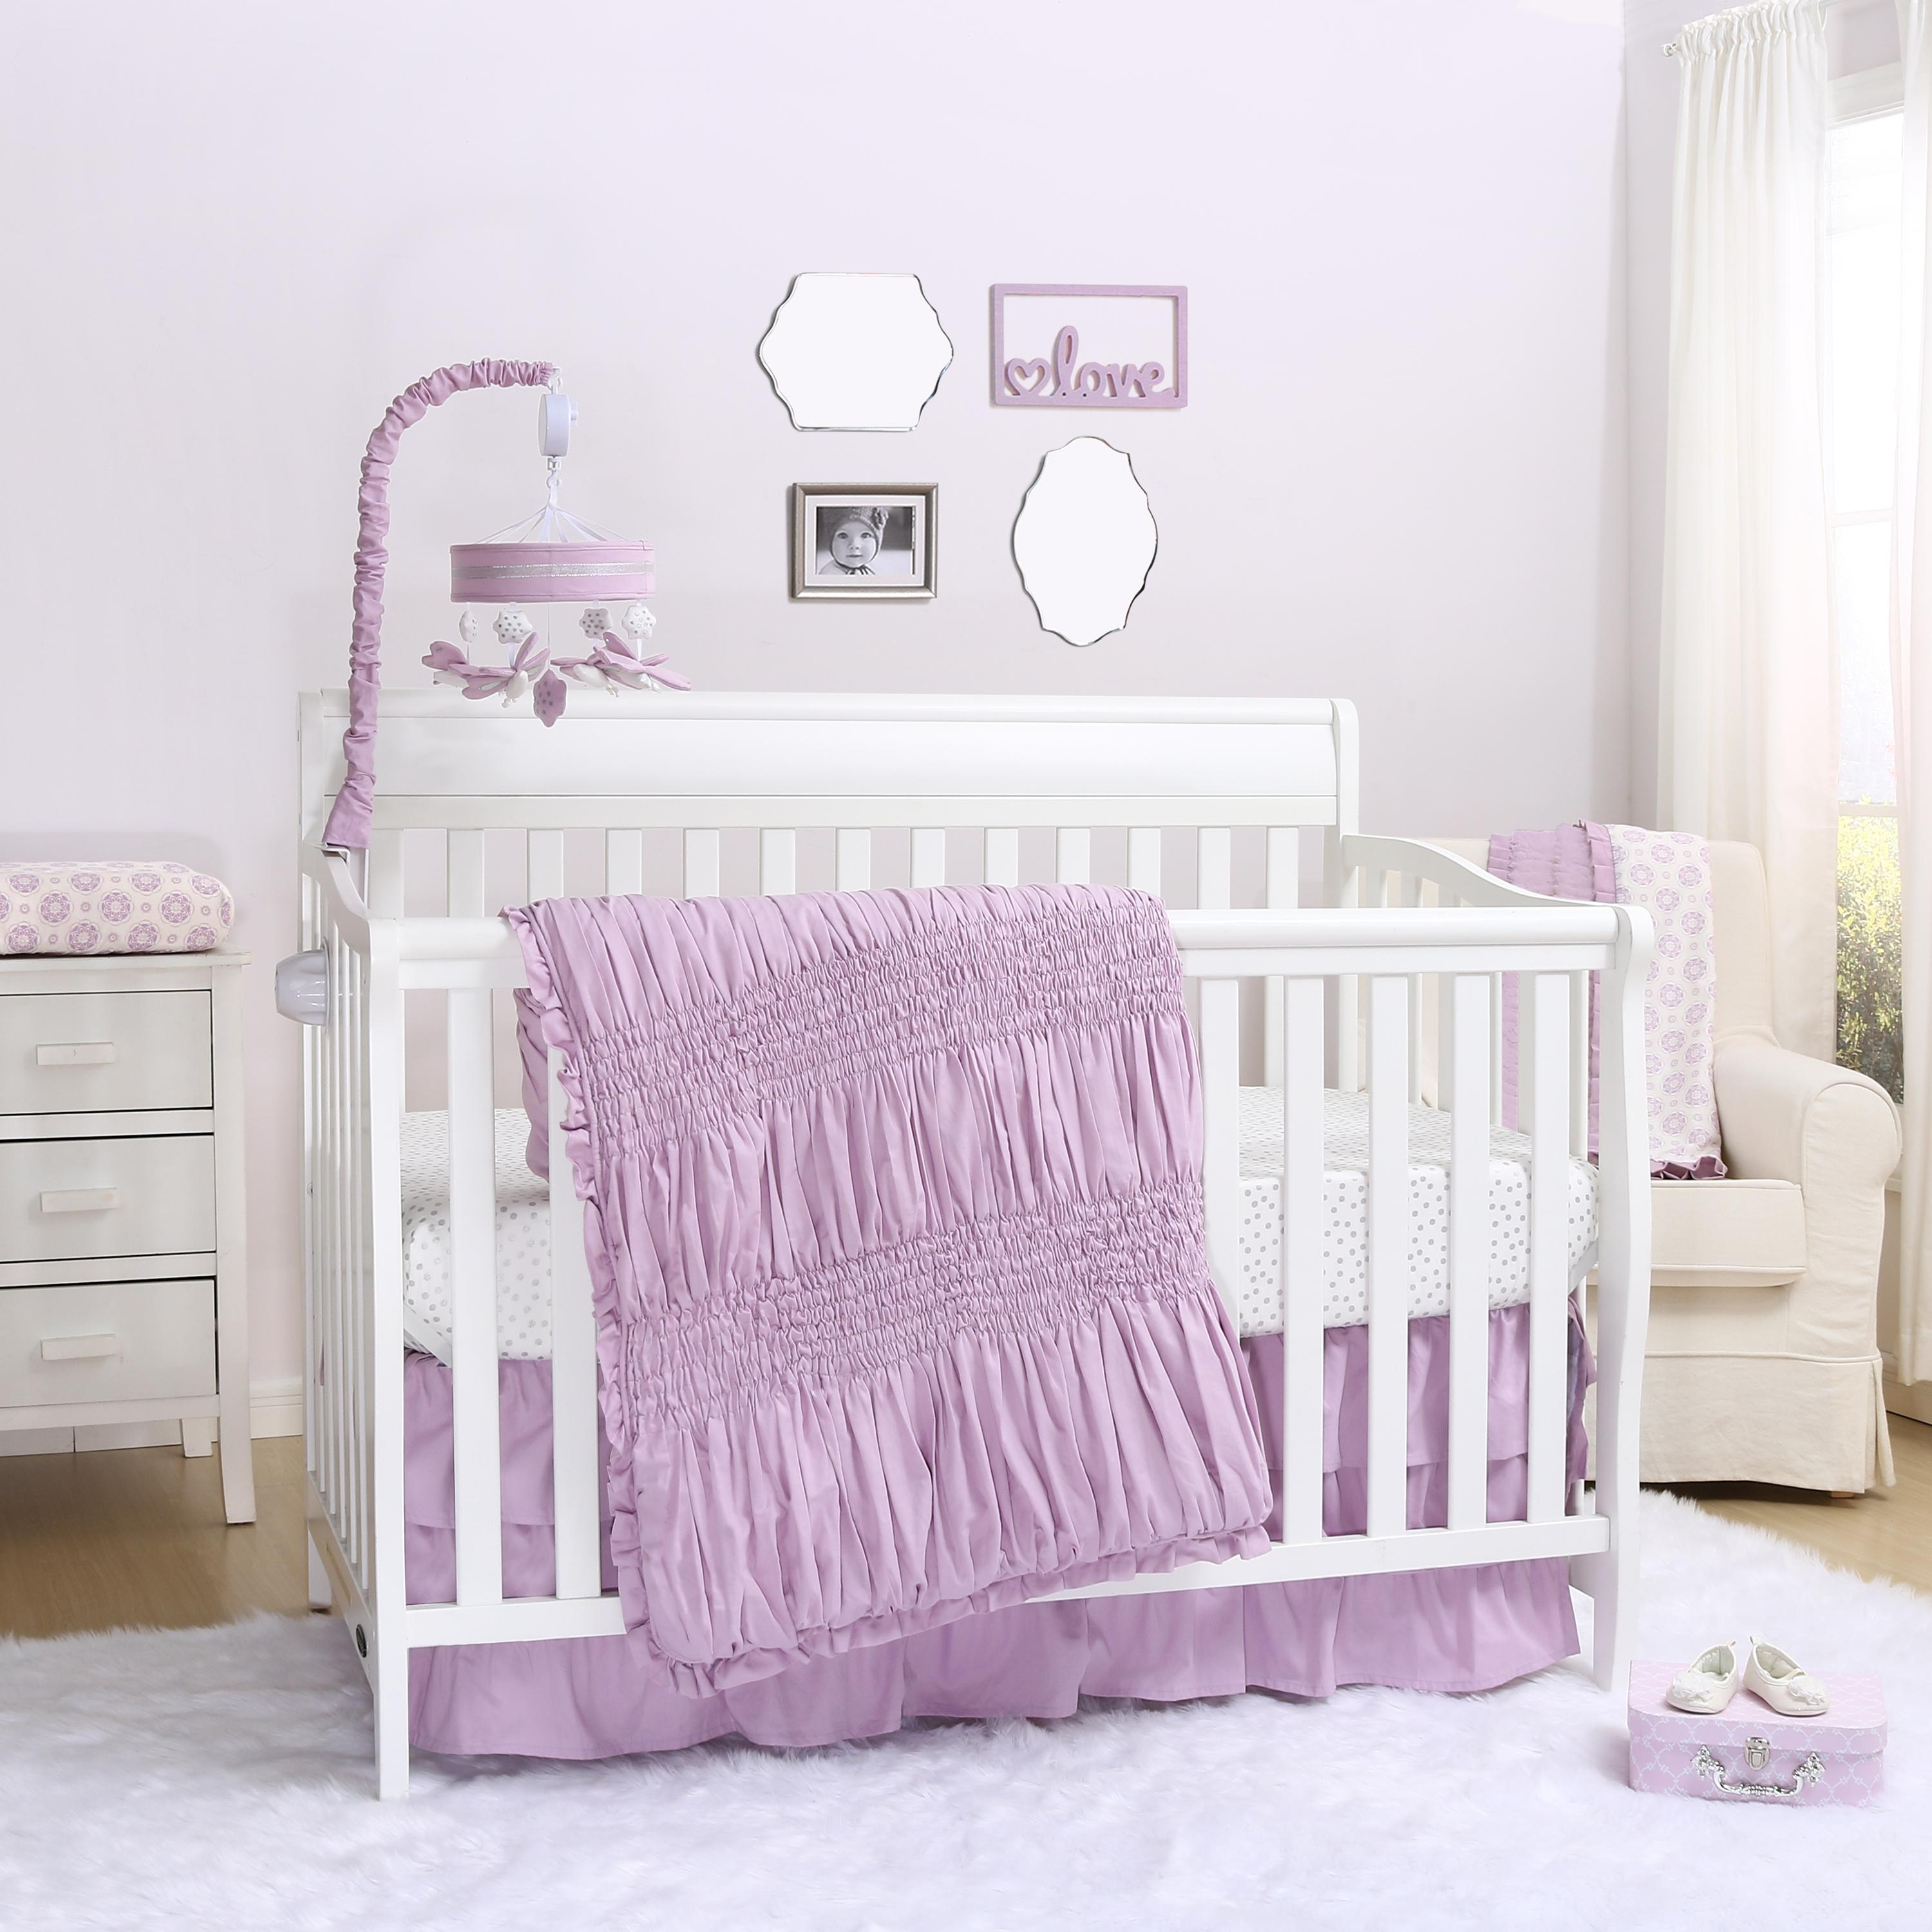 Image of: Shop Baby Crib Bedding Sets The Peanutshell